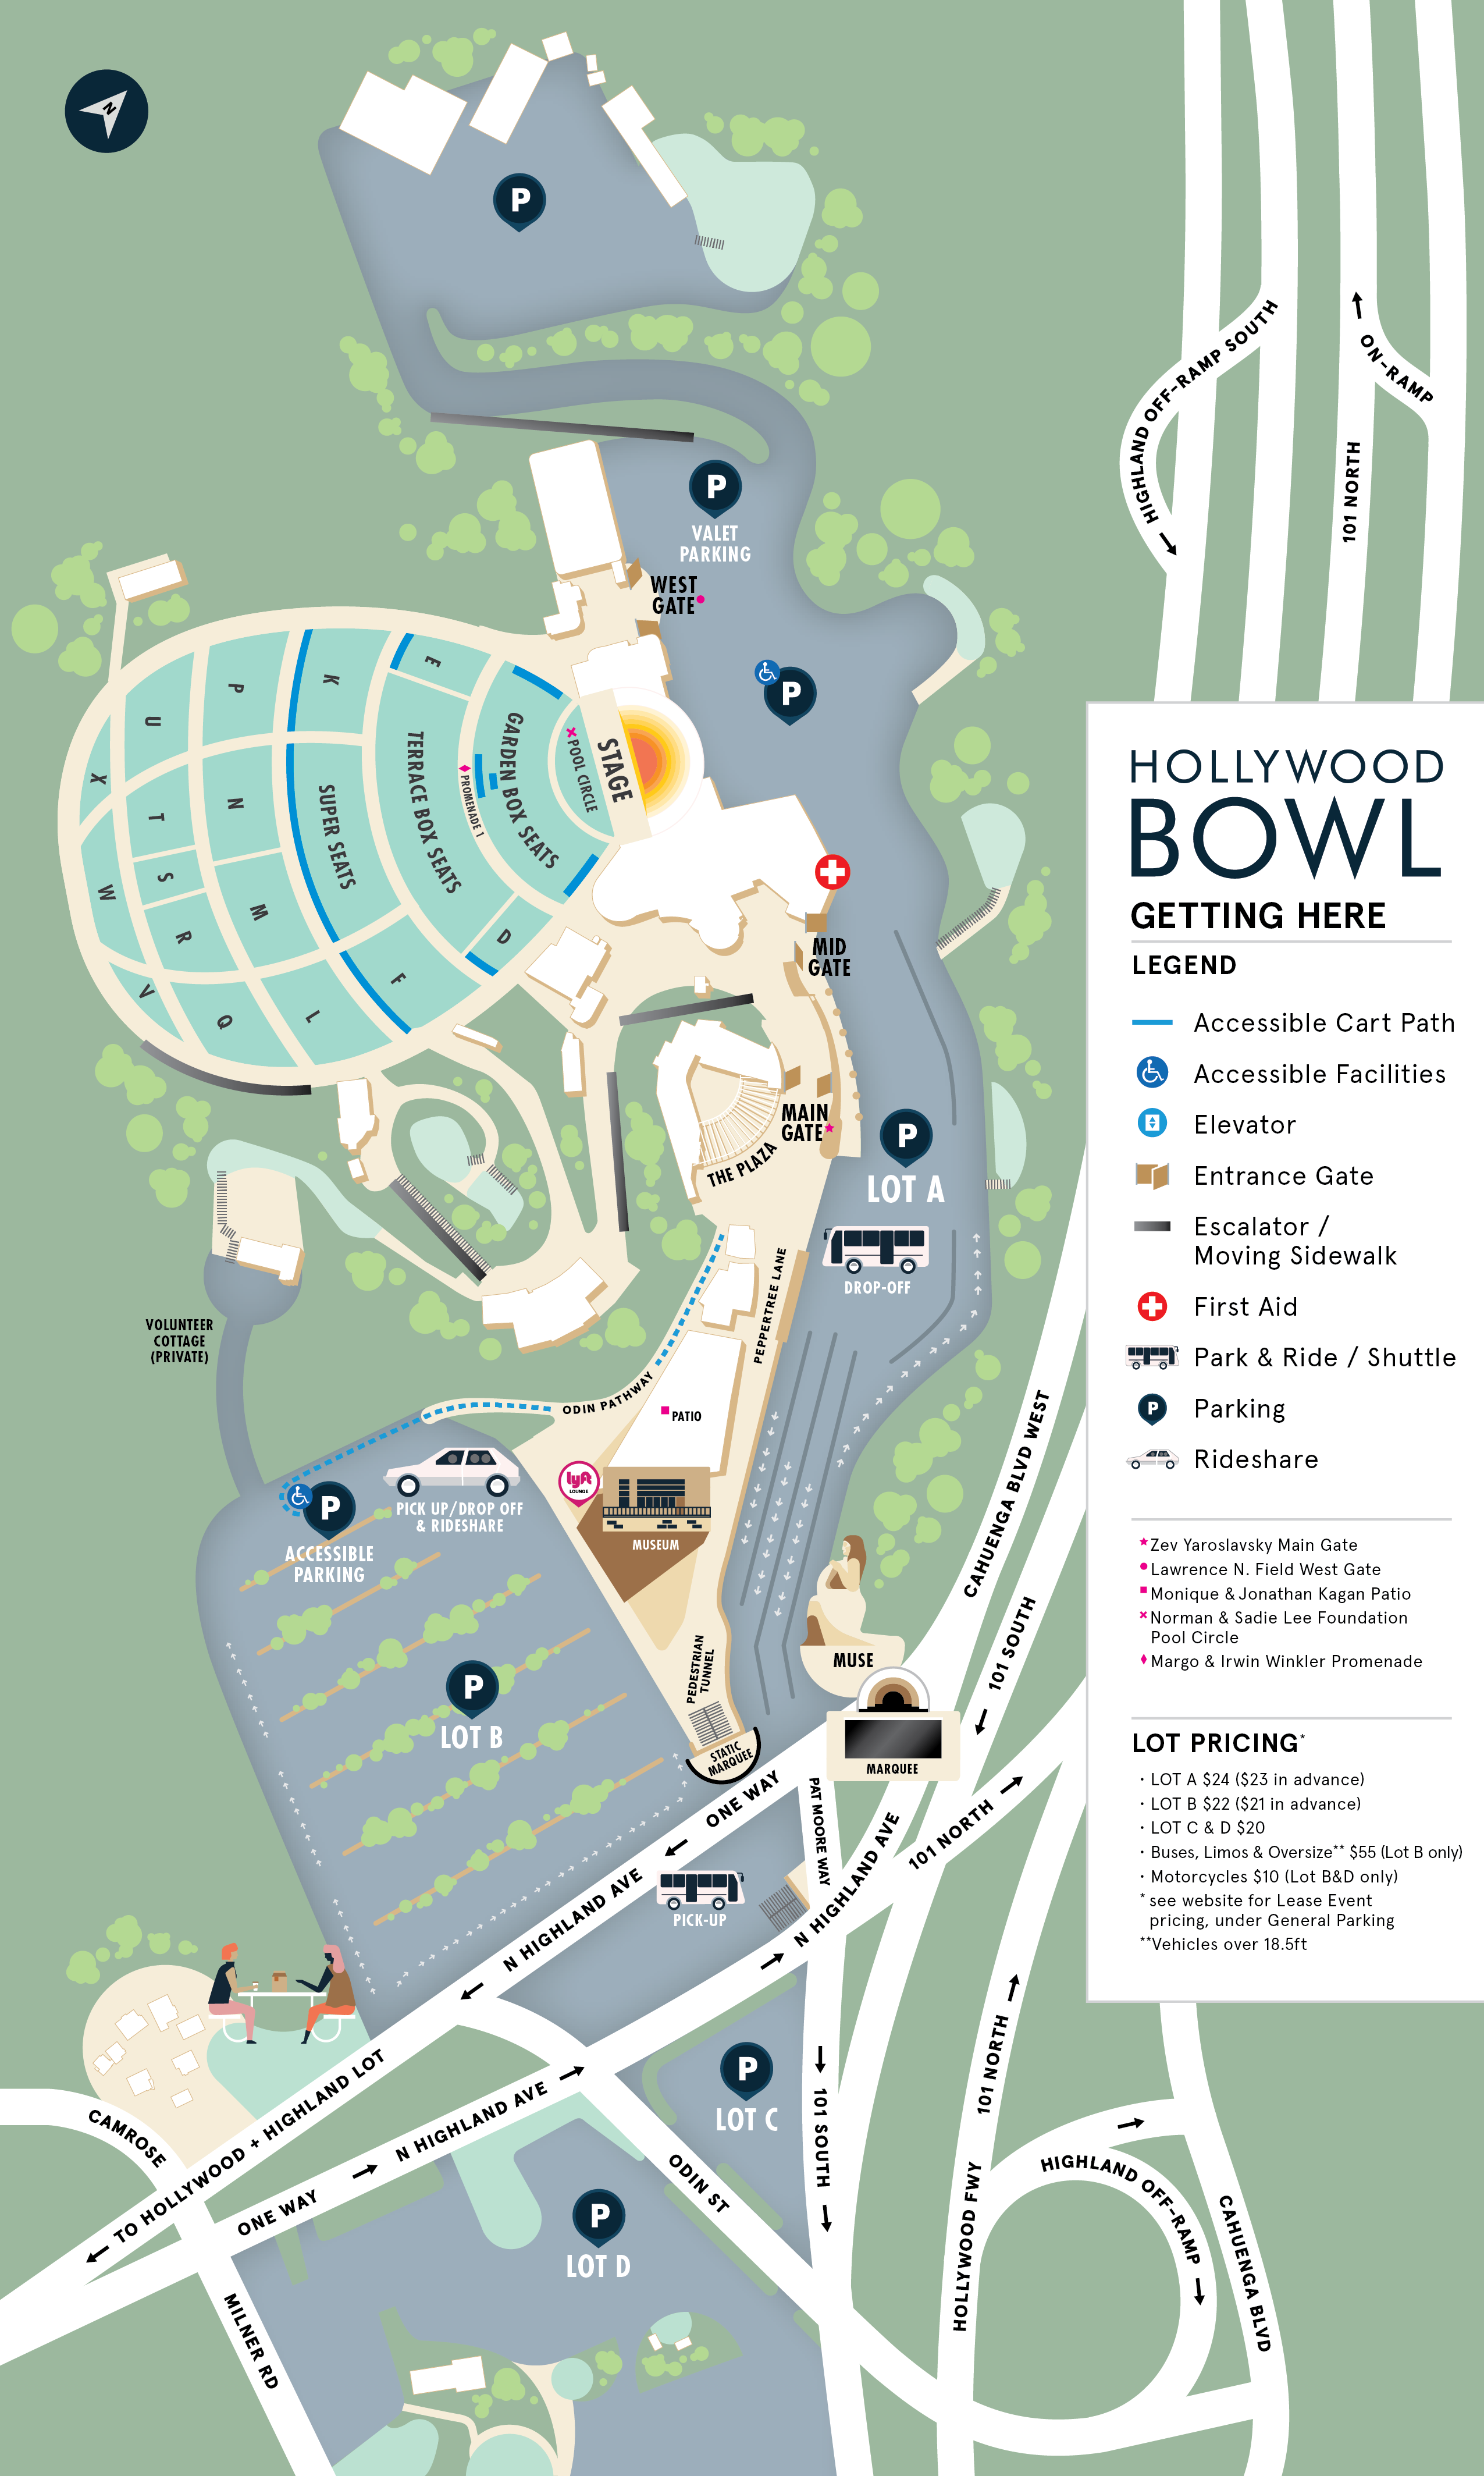 Hollywood Bowl Grounds Map | Hollywood Bowl on westwood la map, westwood kansas map, westwood ma zoning map, westwood map google maps, westwood map of grounds, westwood ucla map,